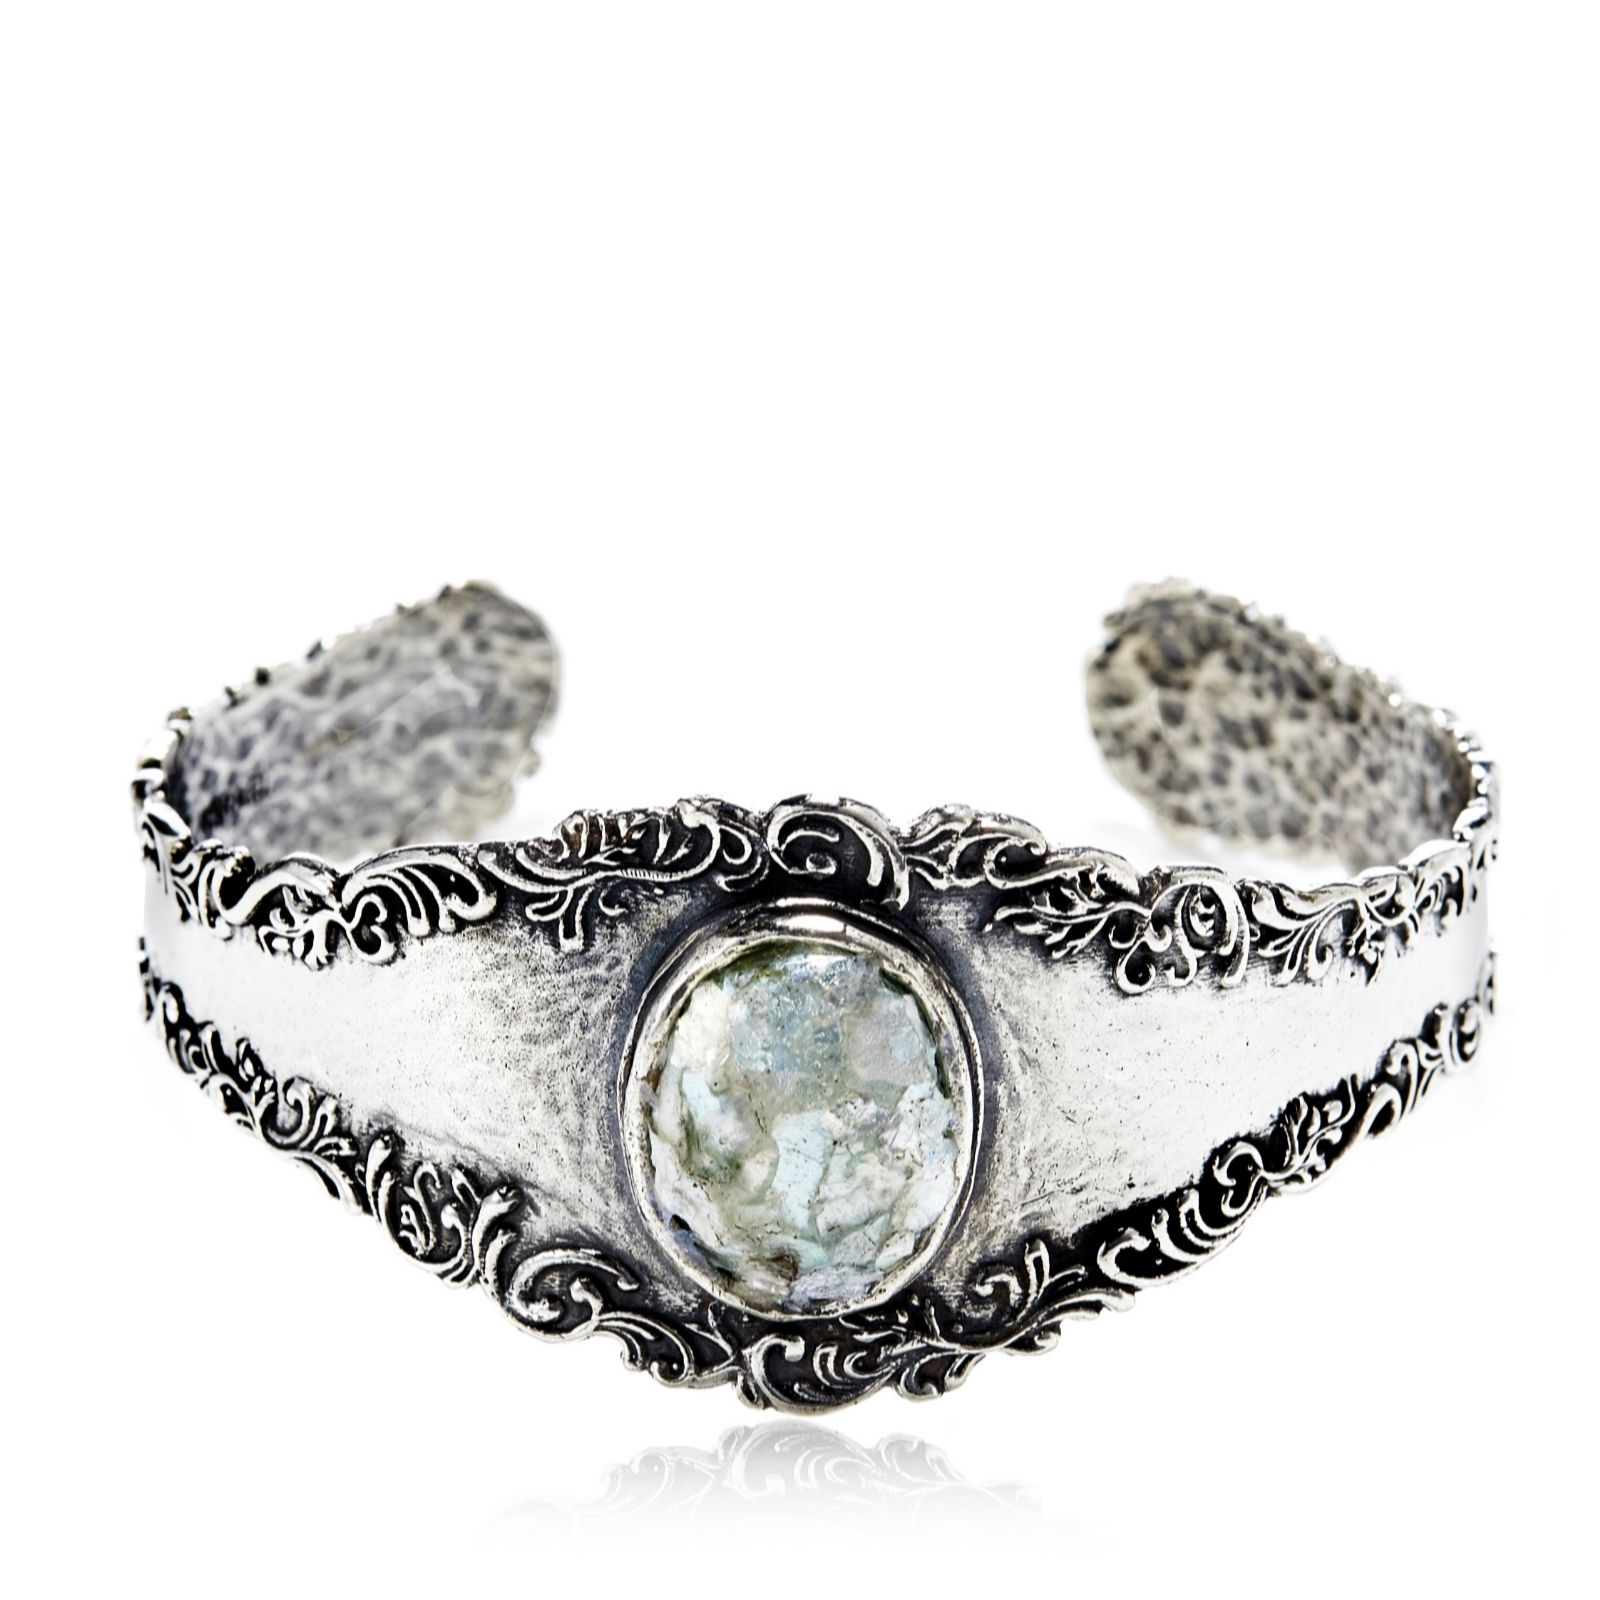 Or Paz Roman Glass Bangle Sterling Silver